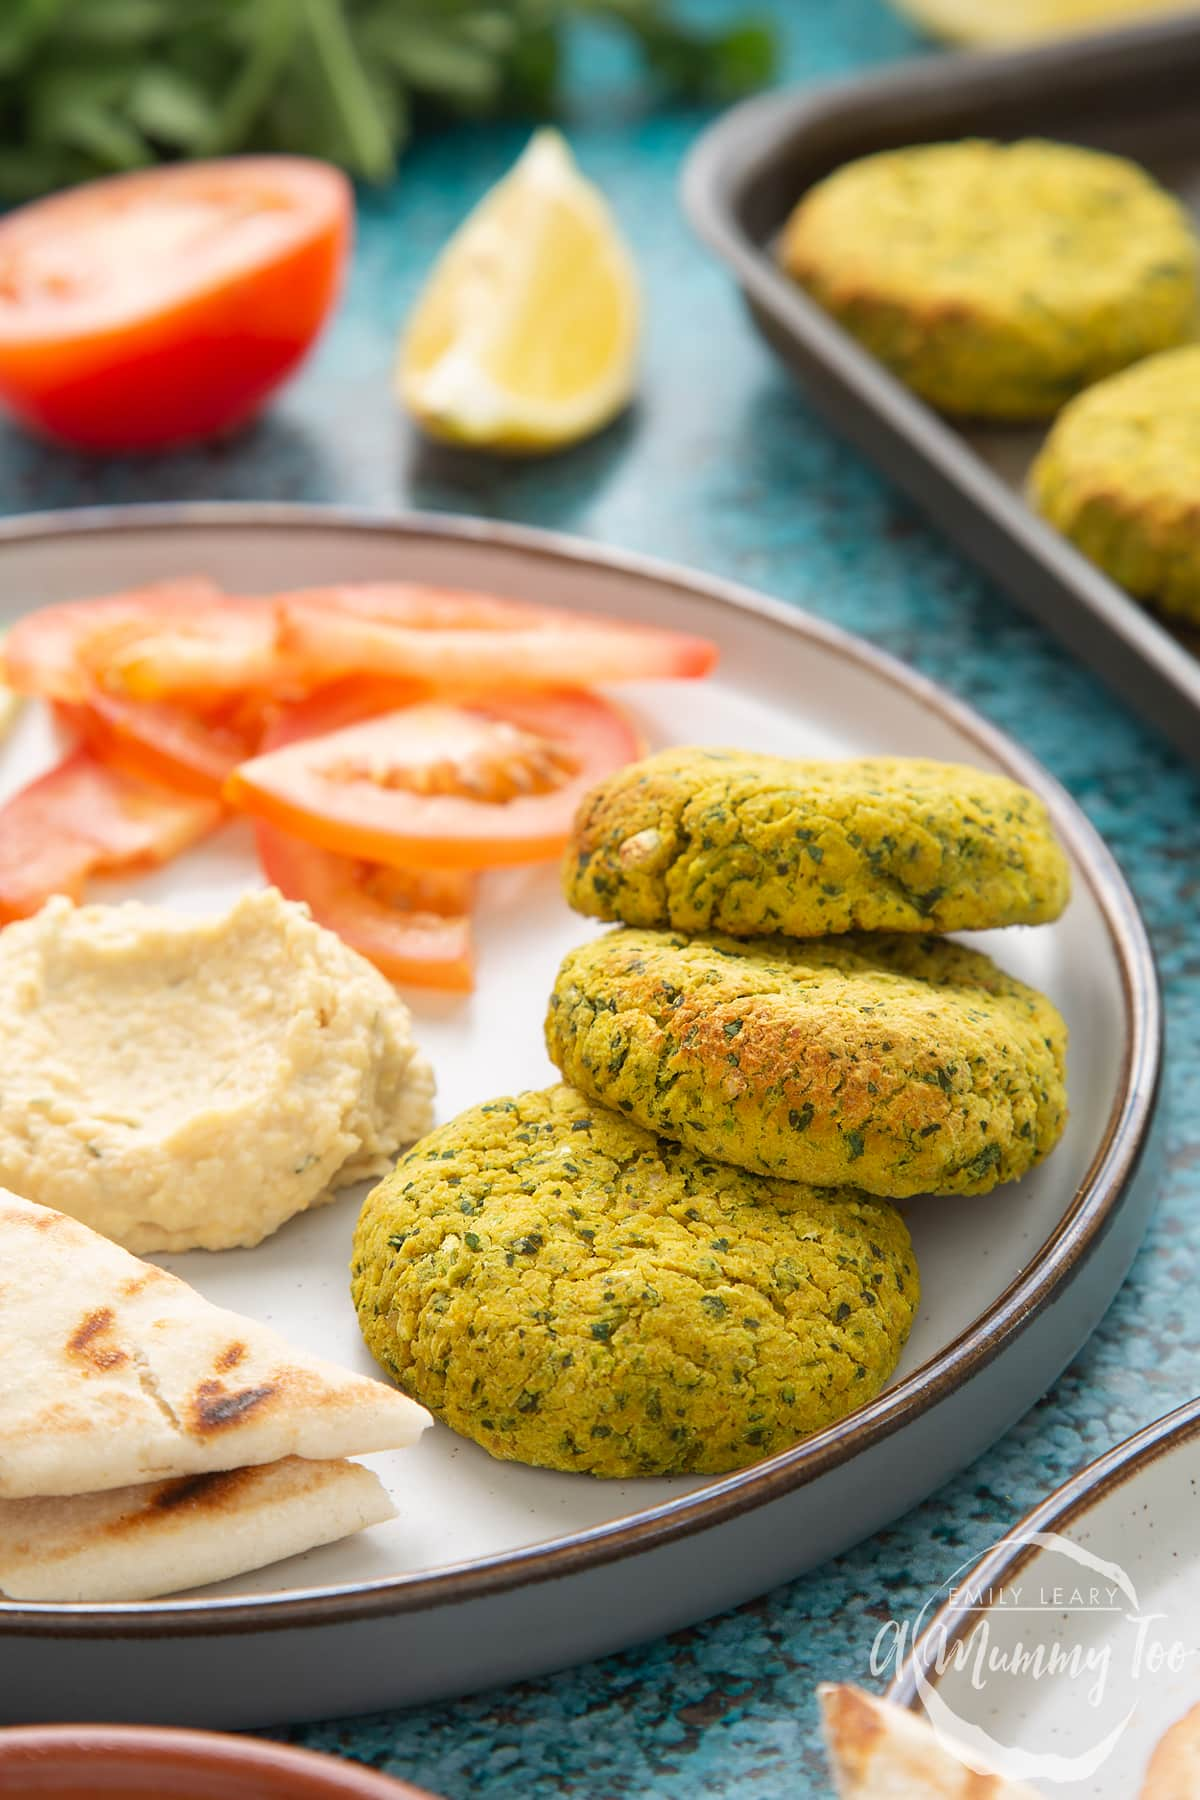 Gluten-free falafel arranged on a plate with tomatoes, cucumber, hummus and  griddled flatbread.